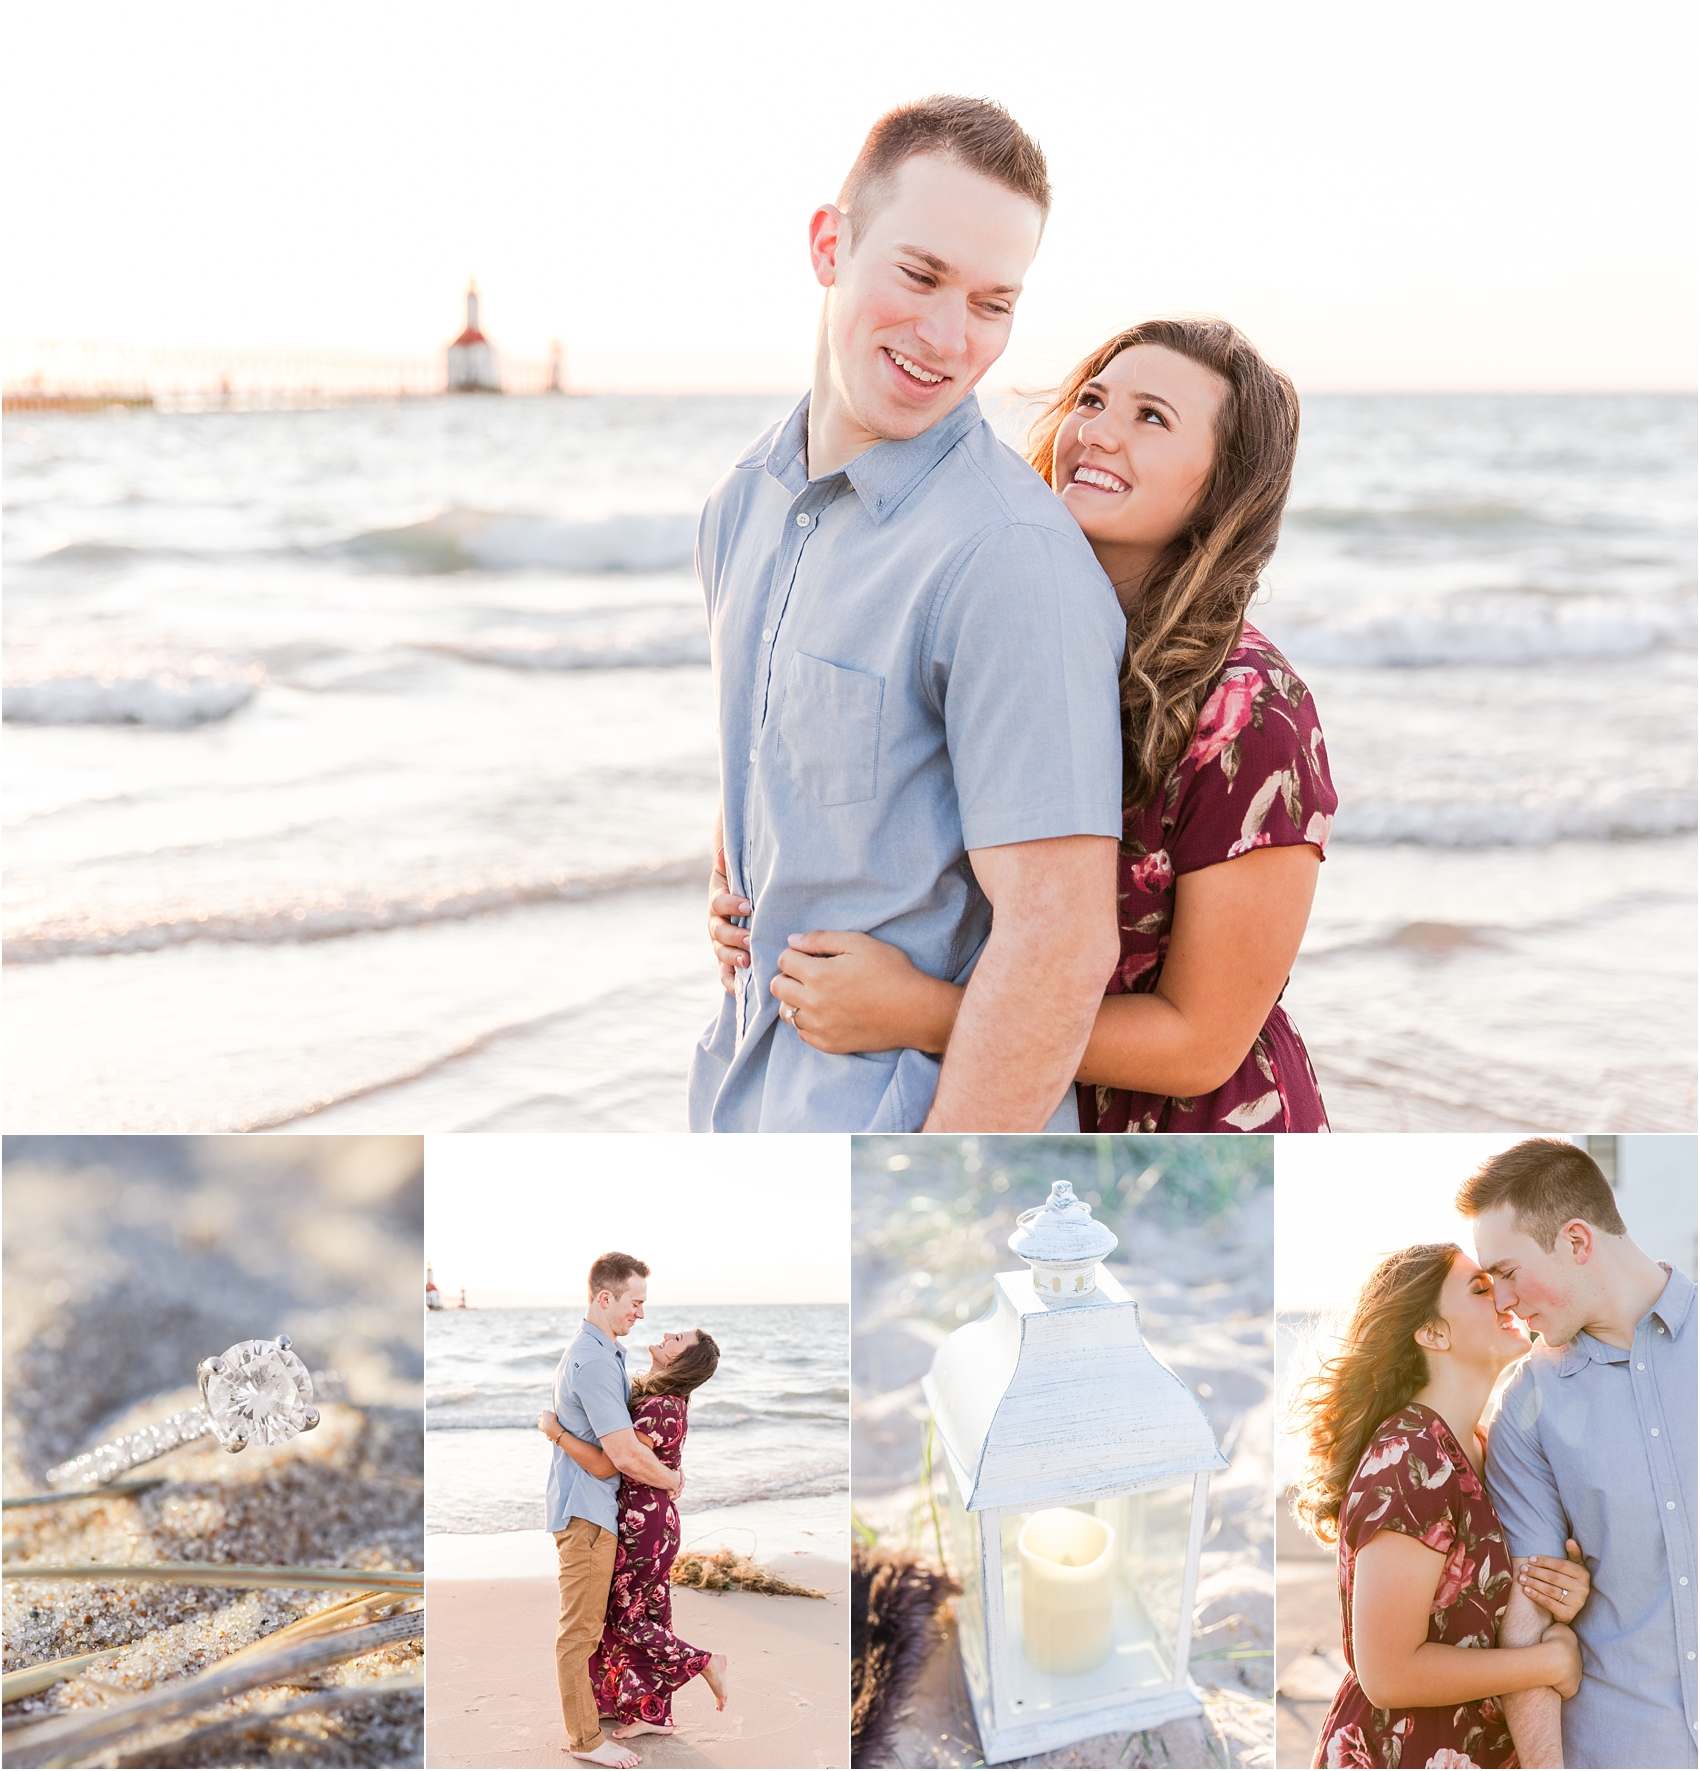 candid-end-of-summer-sunset-engagement-photos-at-silver-beach-in-st-joseph-mi-by-courtney-carolyn-photography_0040.jpg